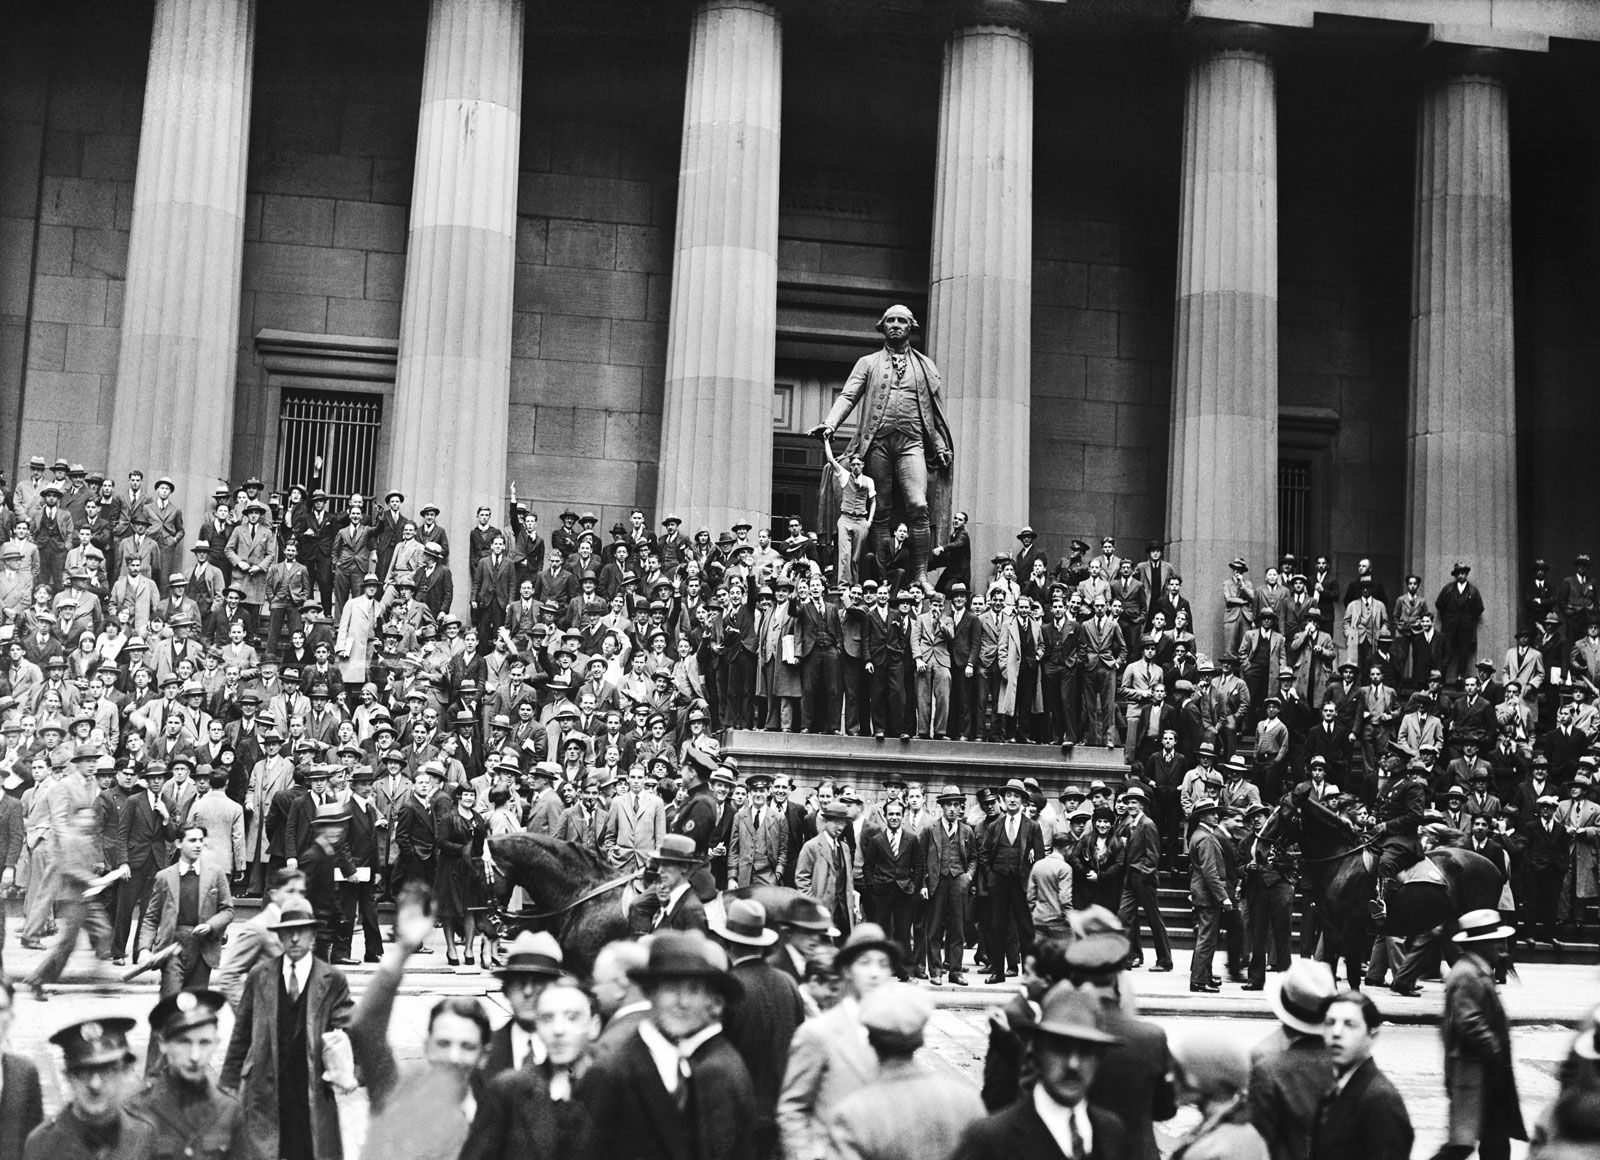 an introduction to the causes of the stock market crash in the united states The wall street crash of 1929 was the greatest stock market crash in the history of the united states it happened in the new york stock exchange on tuesday october 29, 1929, now known as black tuesday.